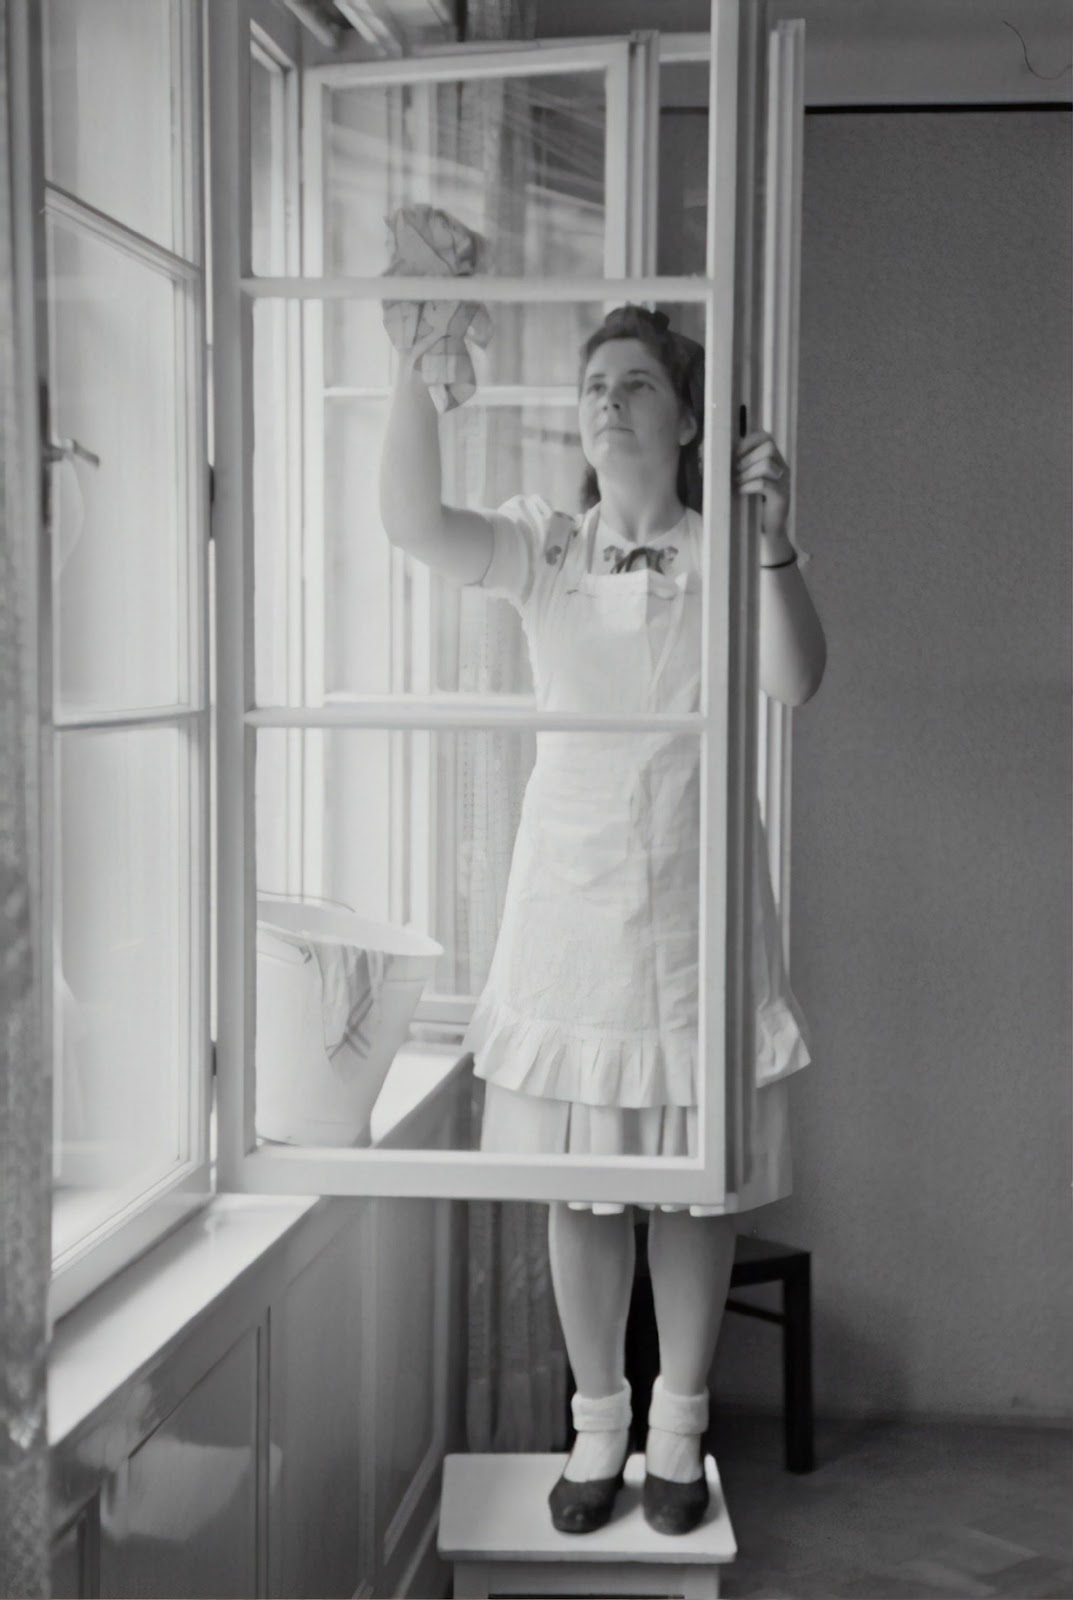 A person standing in front of a window  Description automatically generated